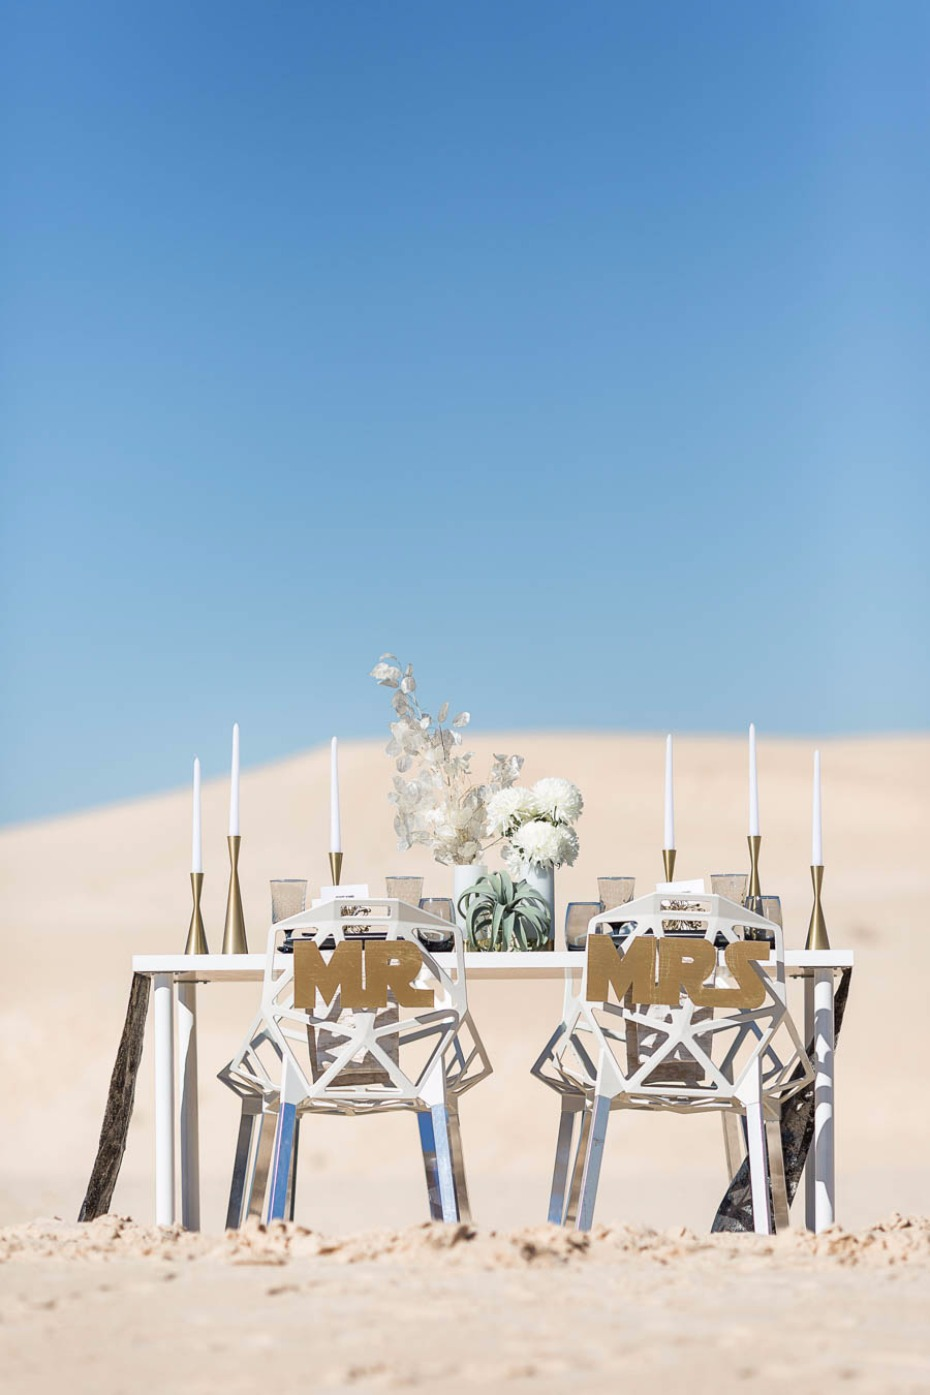 We aren't in Kansas anymore! Love this Star Wars wedding table